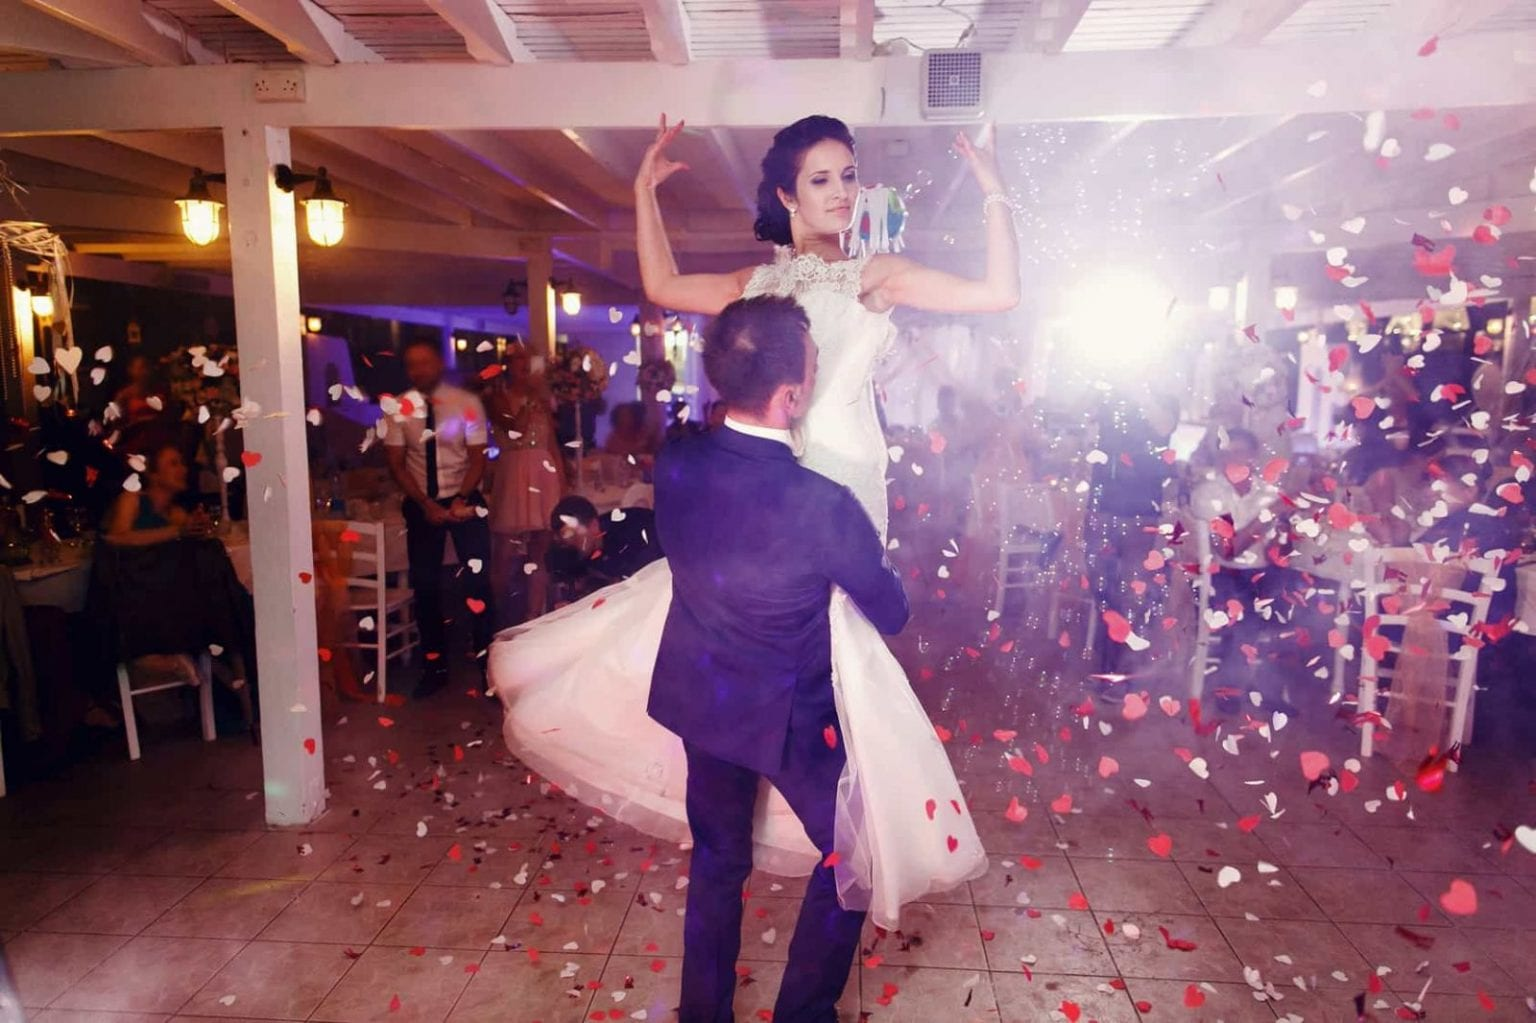 The 5 Common Wedding Music Mistakes to Avoid